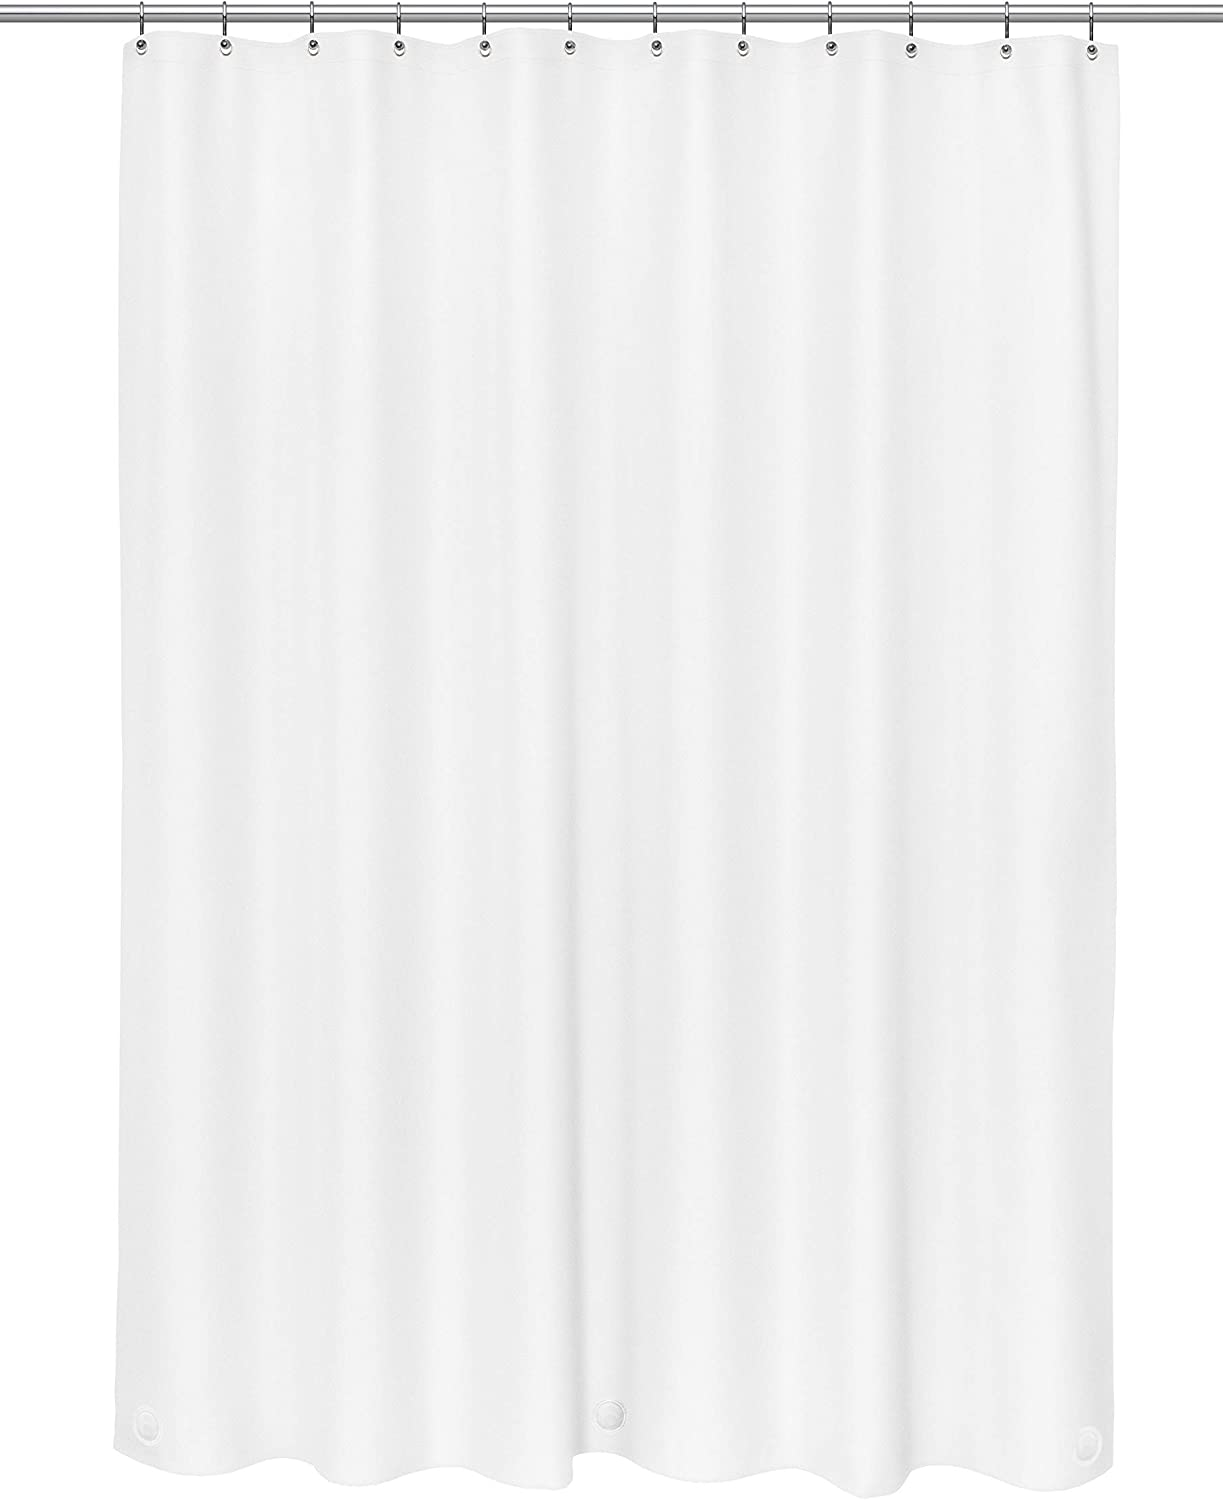 Carnation Home Fashions 2 Pack 10 Gauge Peva Shower Curtain Liners, 72X72, White